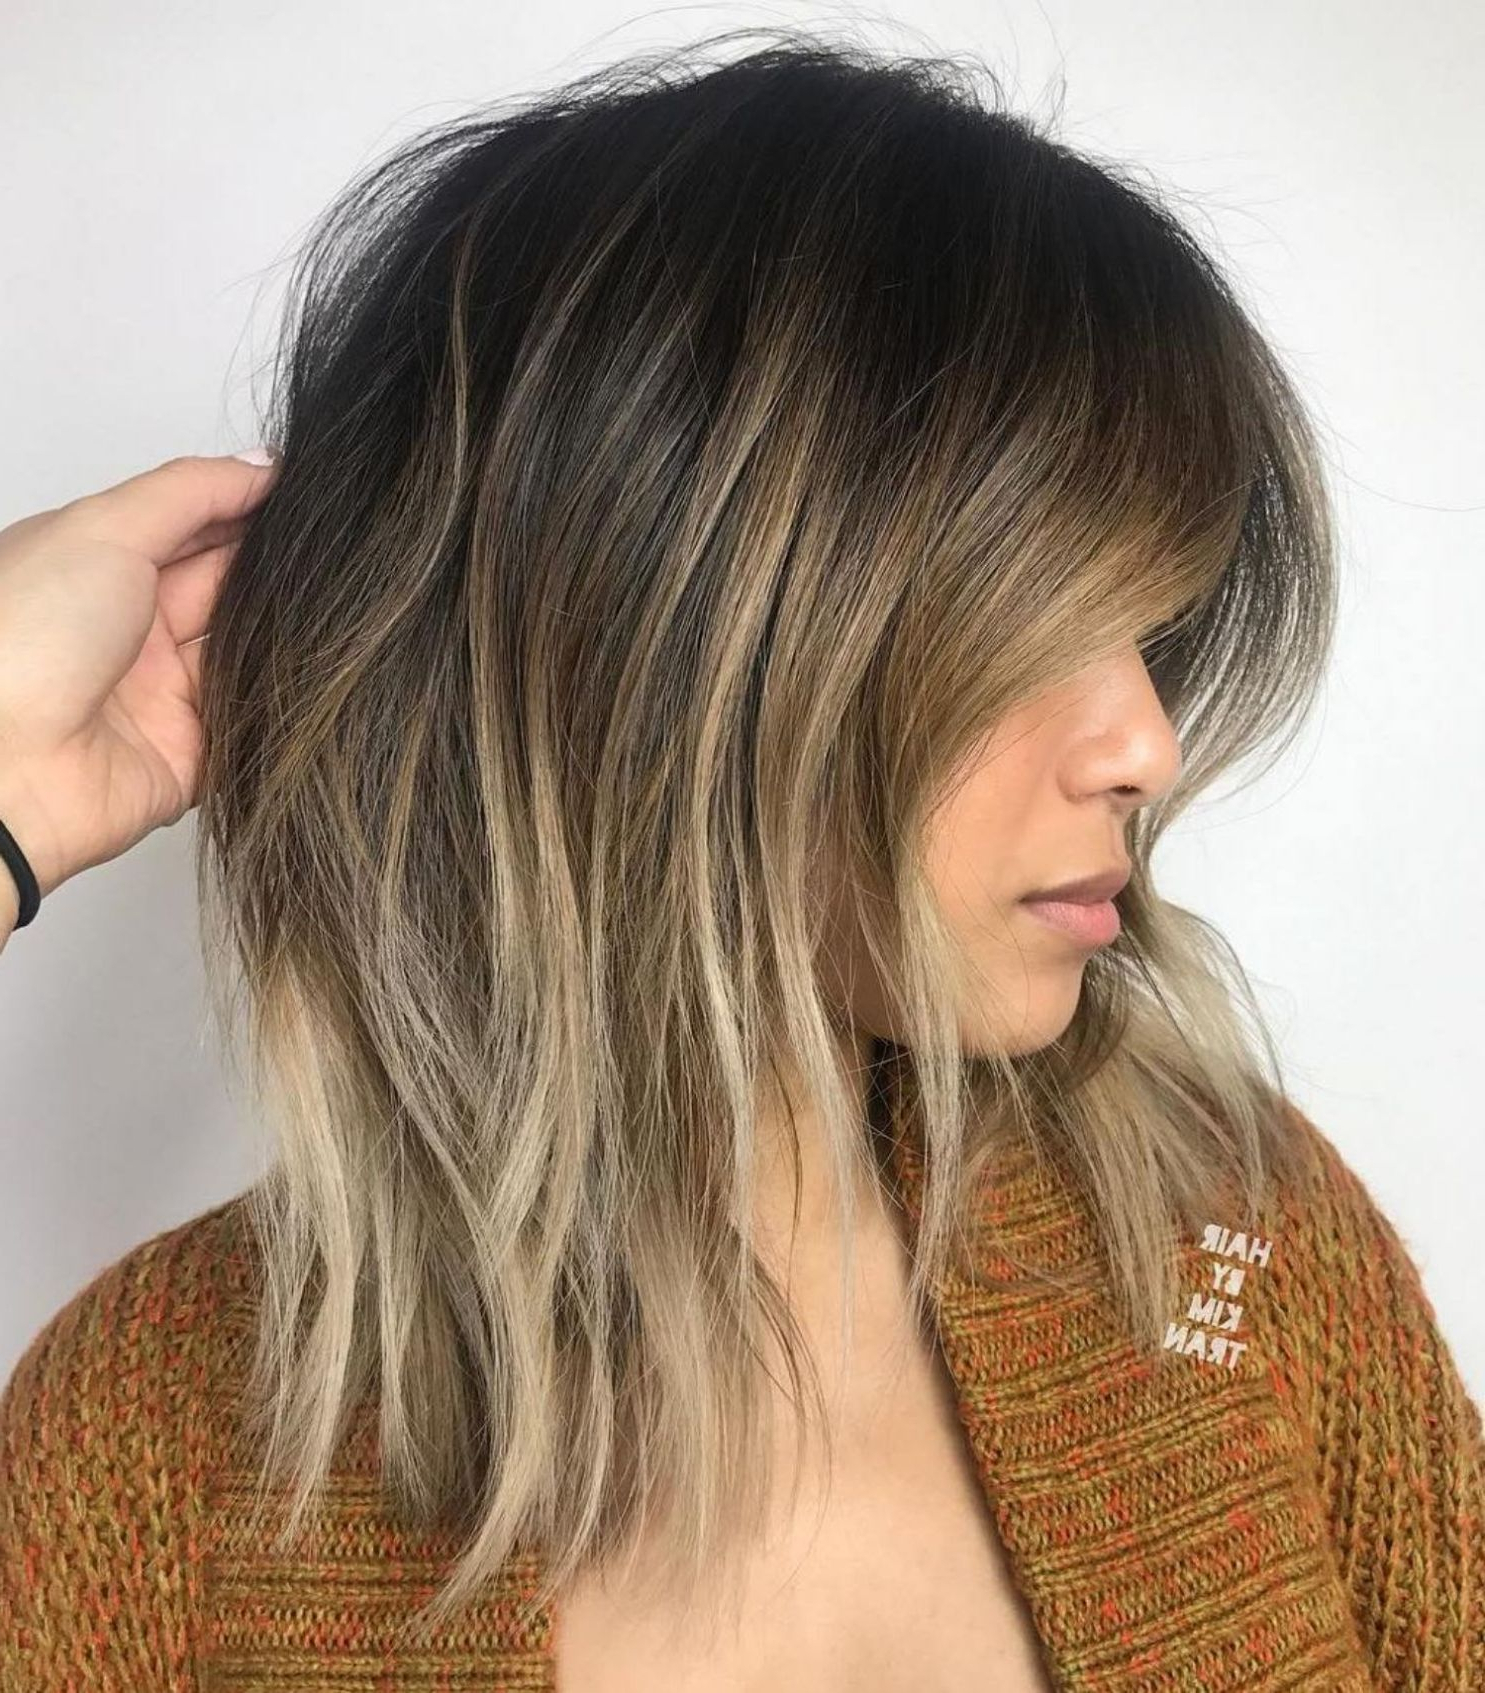 60 Fun And Flattering Medium Hairstyles For Women In 2019 In Disconnected Shaggy Brunette Bob Hairstyles (View 10 of 20)